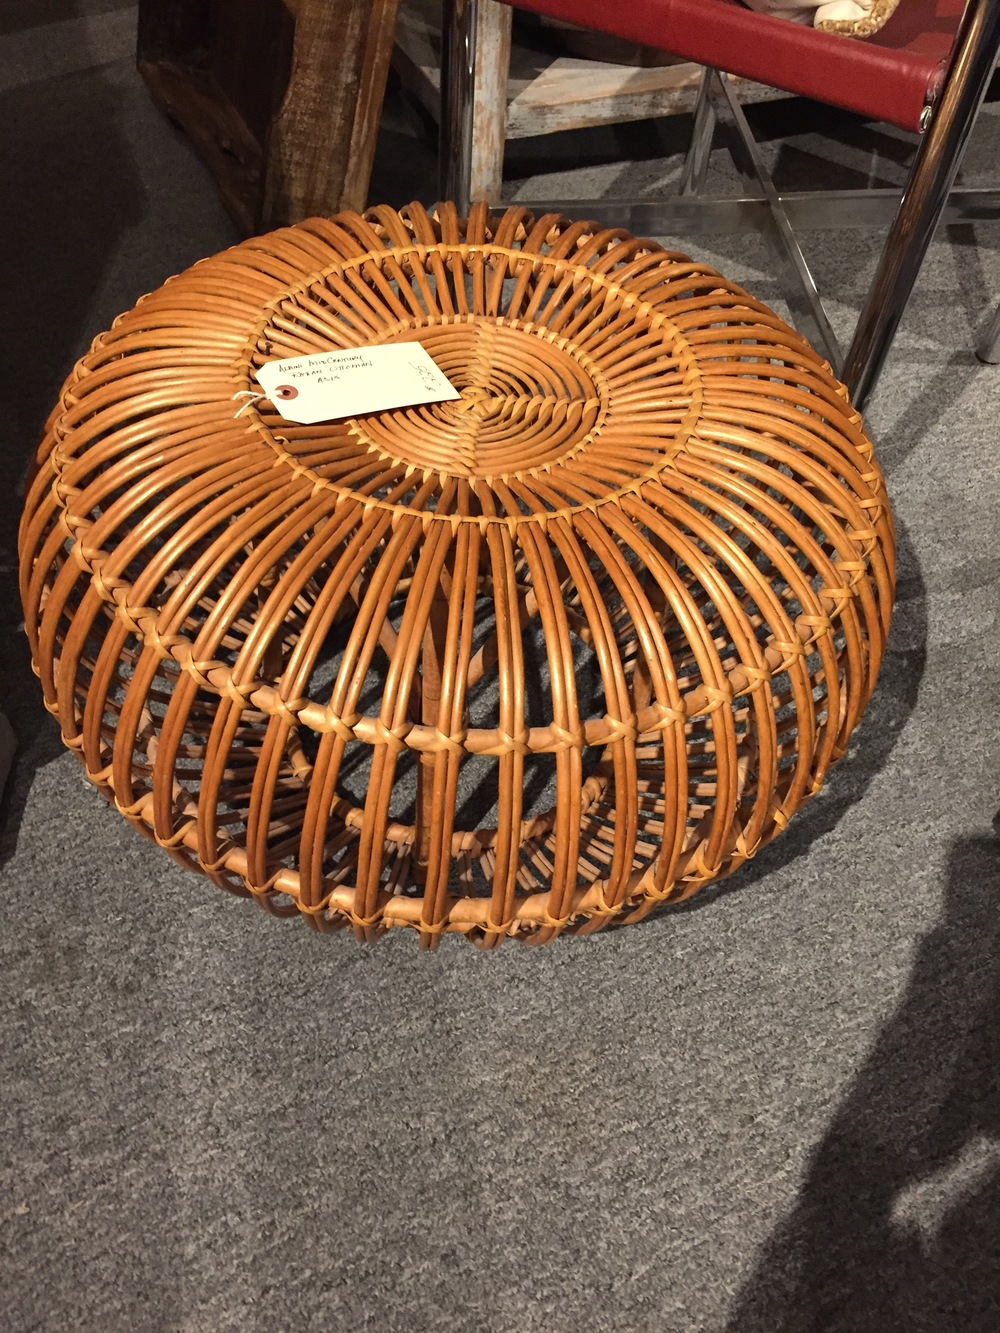 I'm seeing these rattan ottomans everywhere these days - here's a vintage one they had at Ramble. Wishing I had a place to use this!